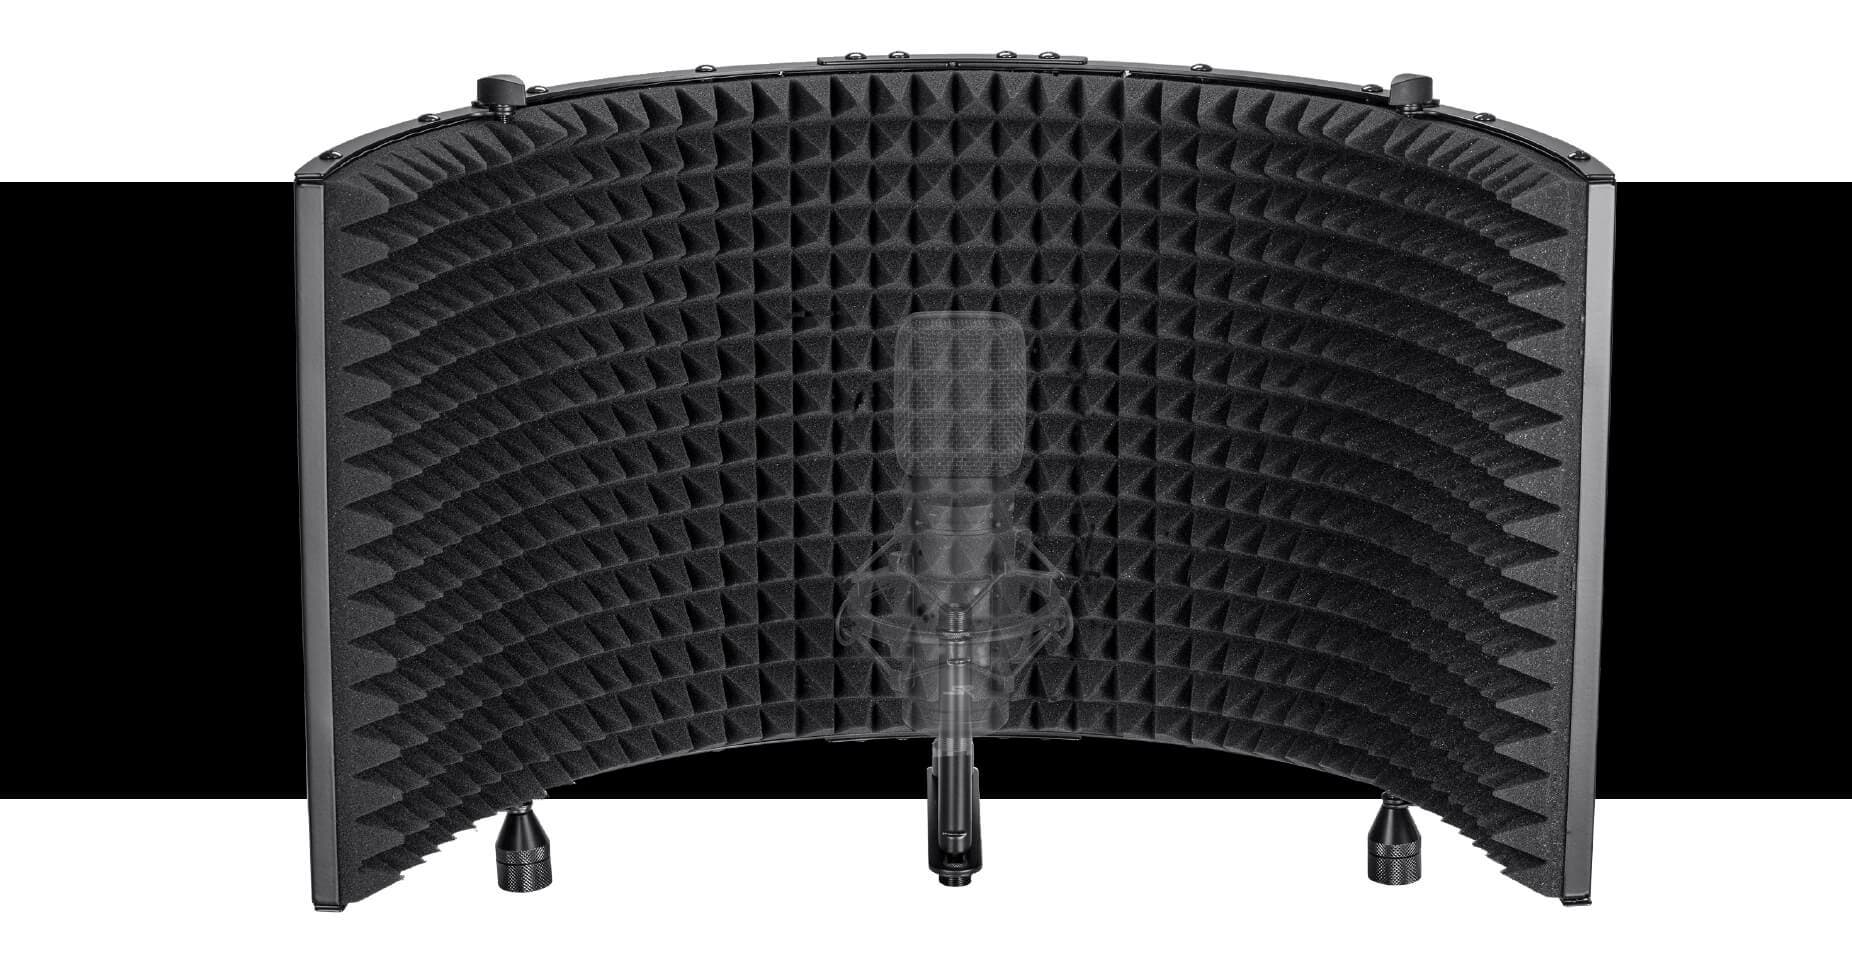 METAL SHIELD FOR STABILITY AND ARCH ADJUSTMENT. Unlike similar products made of plastic, the Stage Right Microphone Isolation Shield is not only made of metal, but is a full 23.5 inches wide when fully opened. Not only does this give it more stability, but it allows for adjustment of the arch, with the ability to open or close it as much as desired. Additional acoustic treatment is possible using the shield's crossbar to position the microphone closer to or further from the shield.